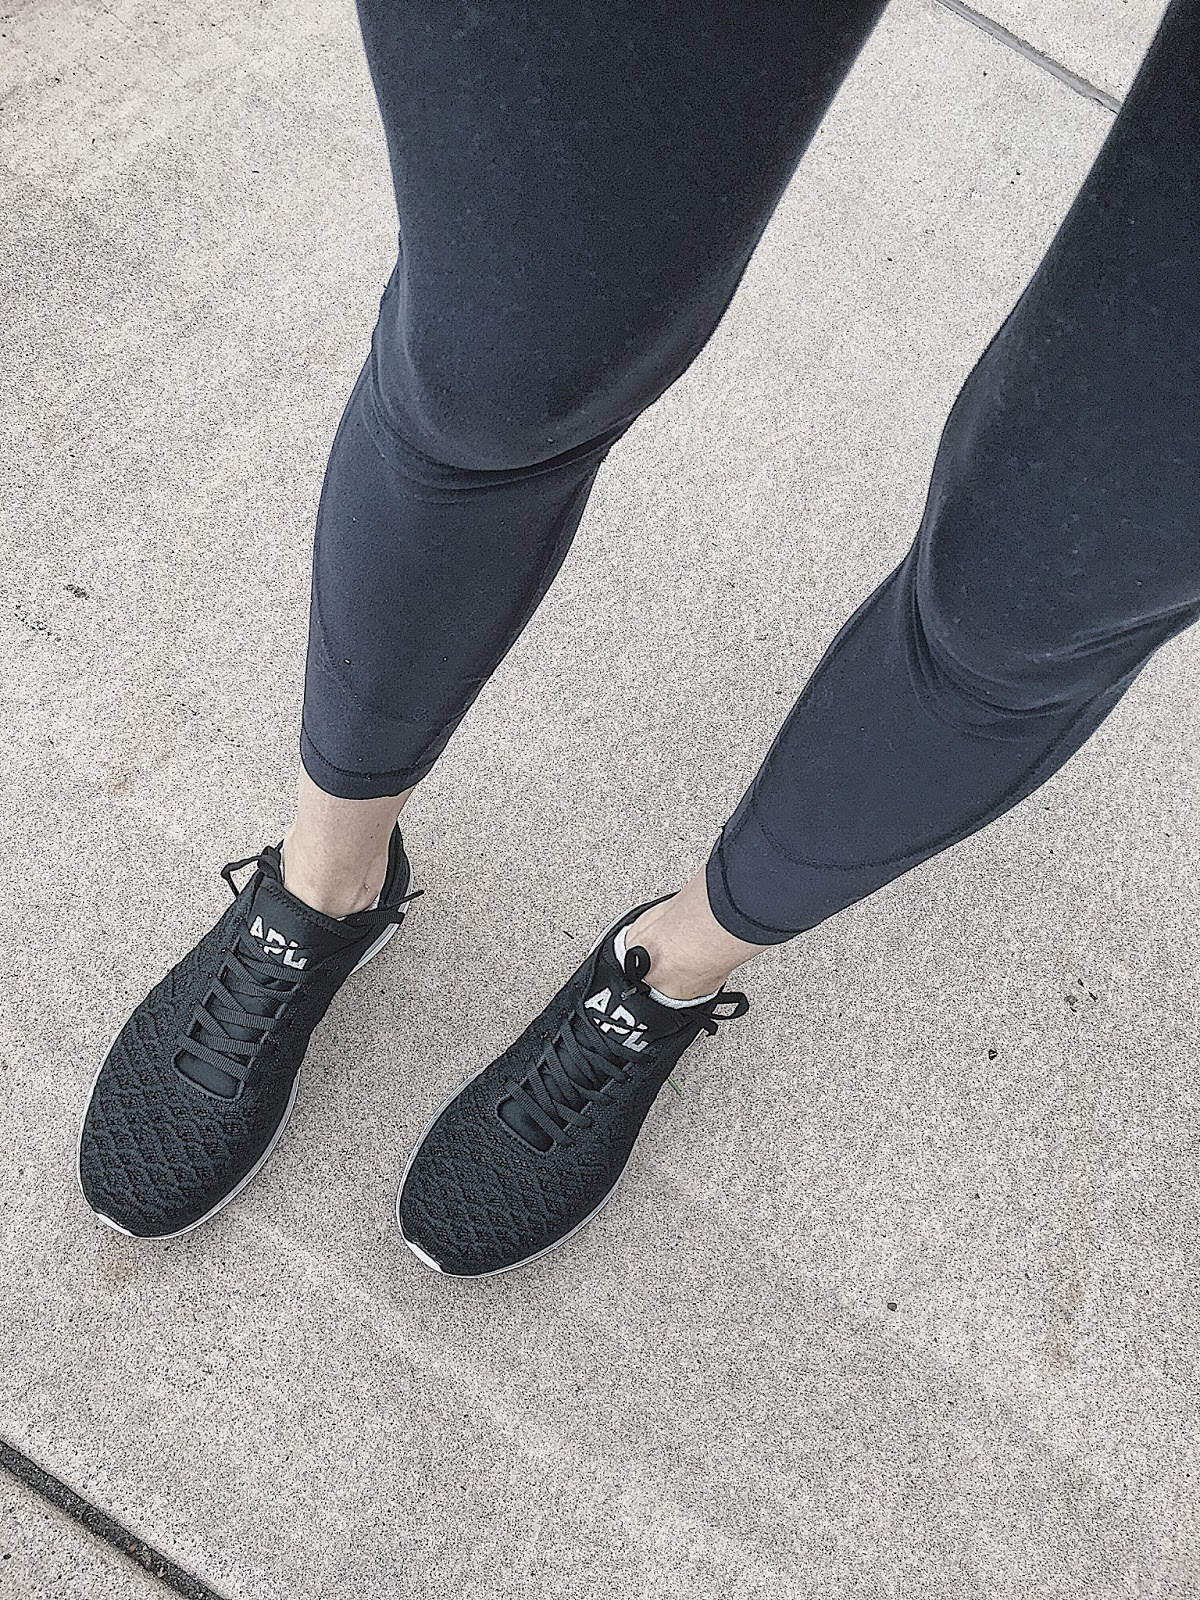 black apl sneakers and best navy workout leggings